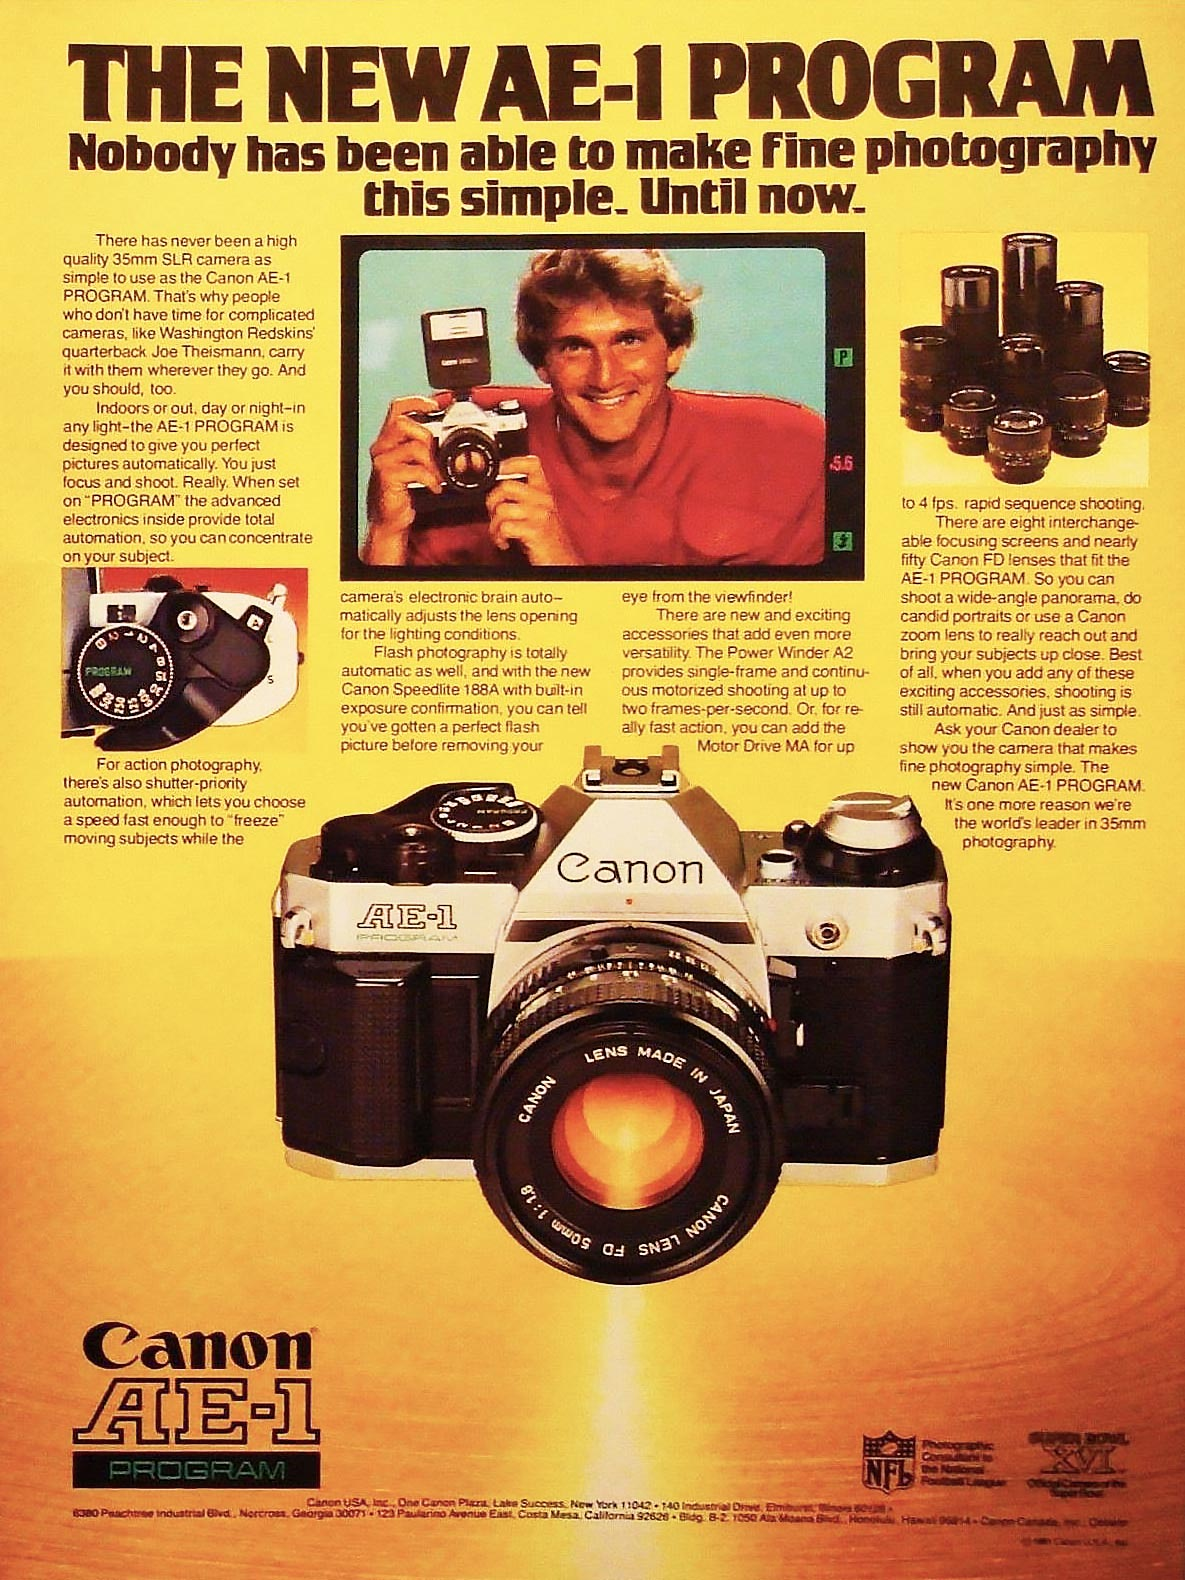 Advertisement for the Canon AE-1 Program